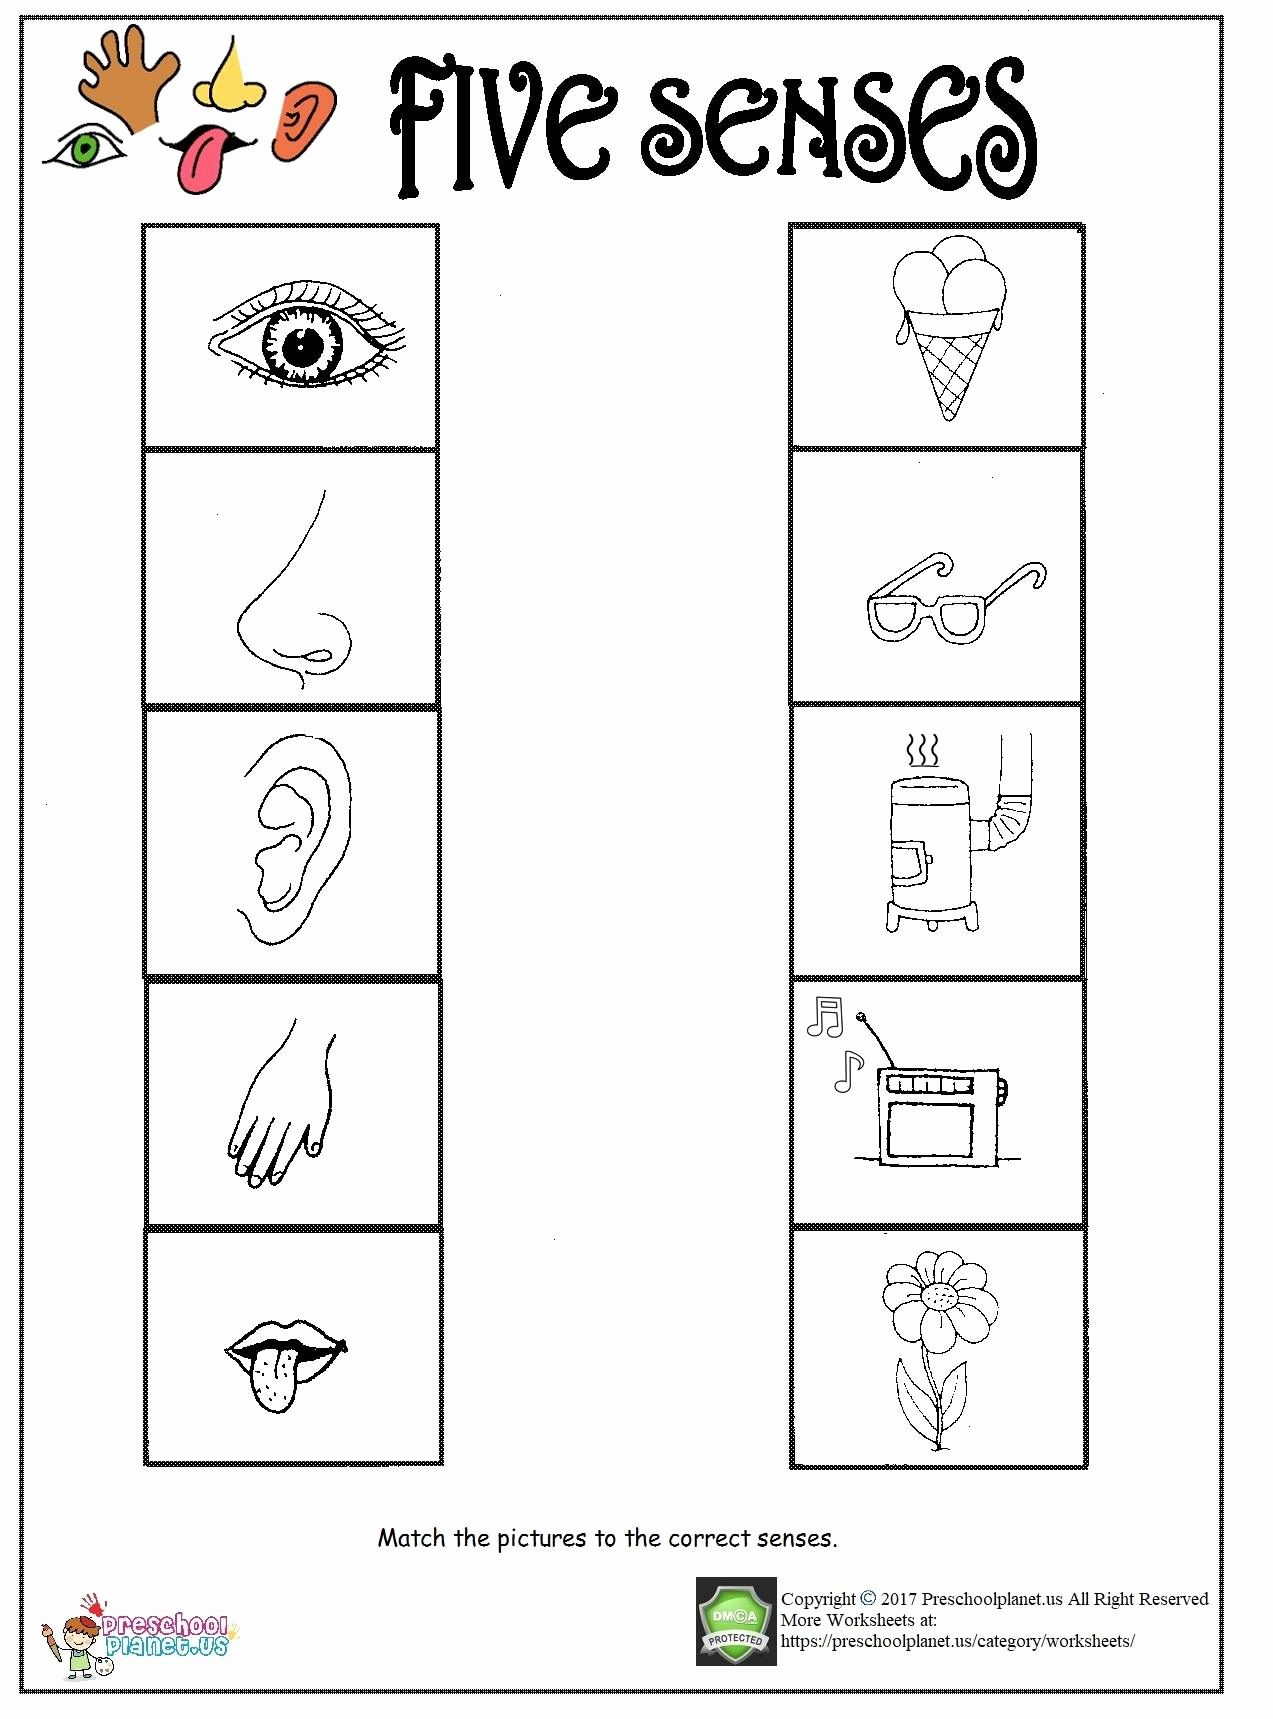 The Five Senses Worksheets Get Your Child To Think About